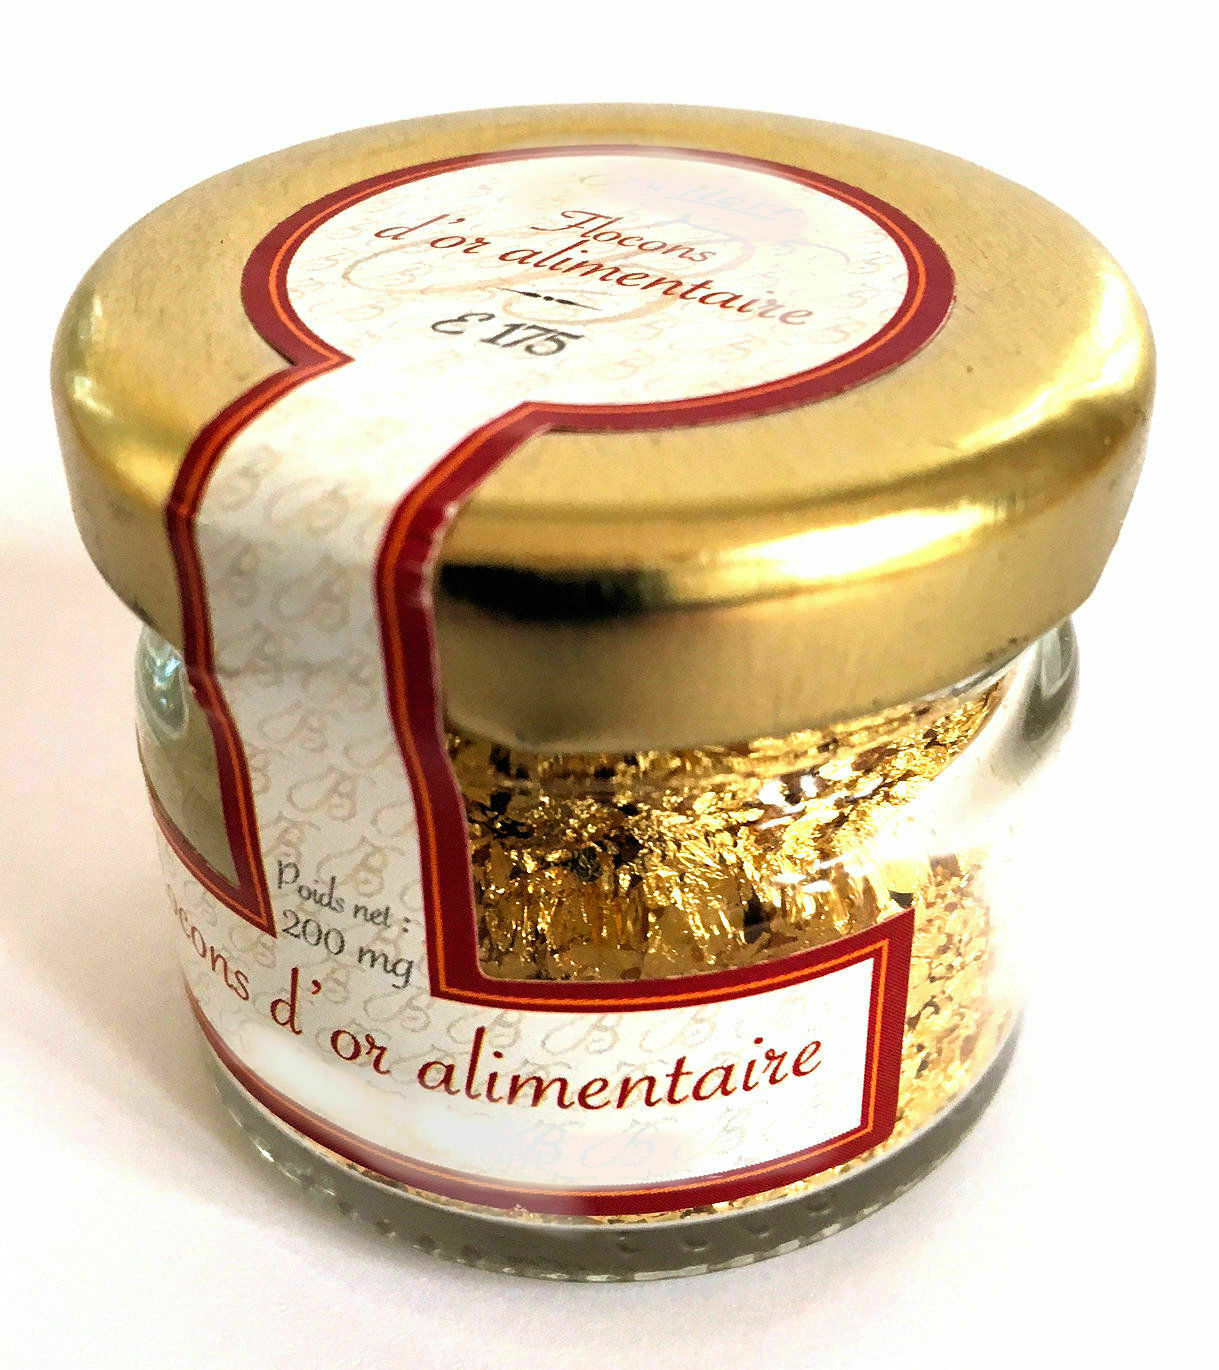 24 Karat Edible Gold Flakes from France - Nothing but 100% Gold